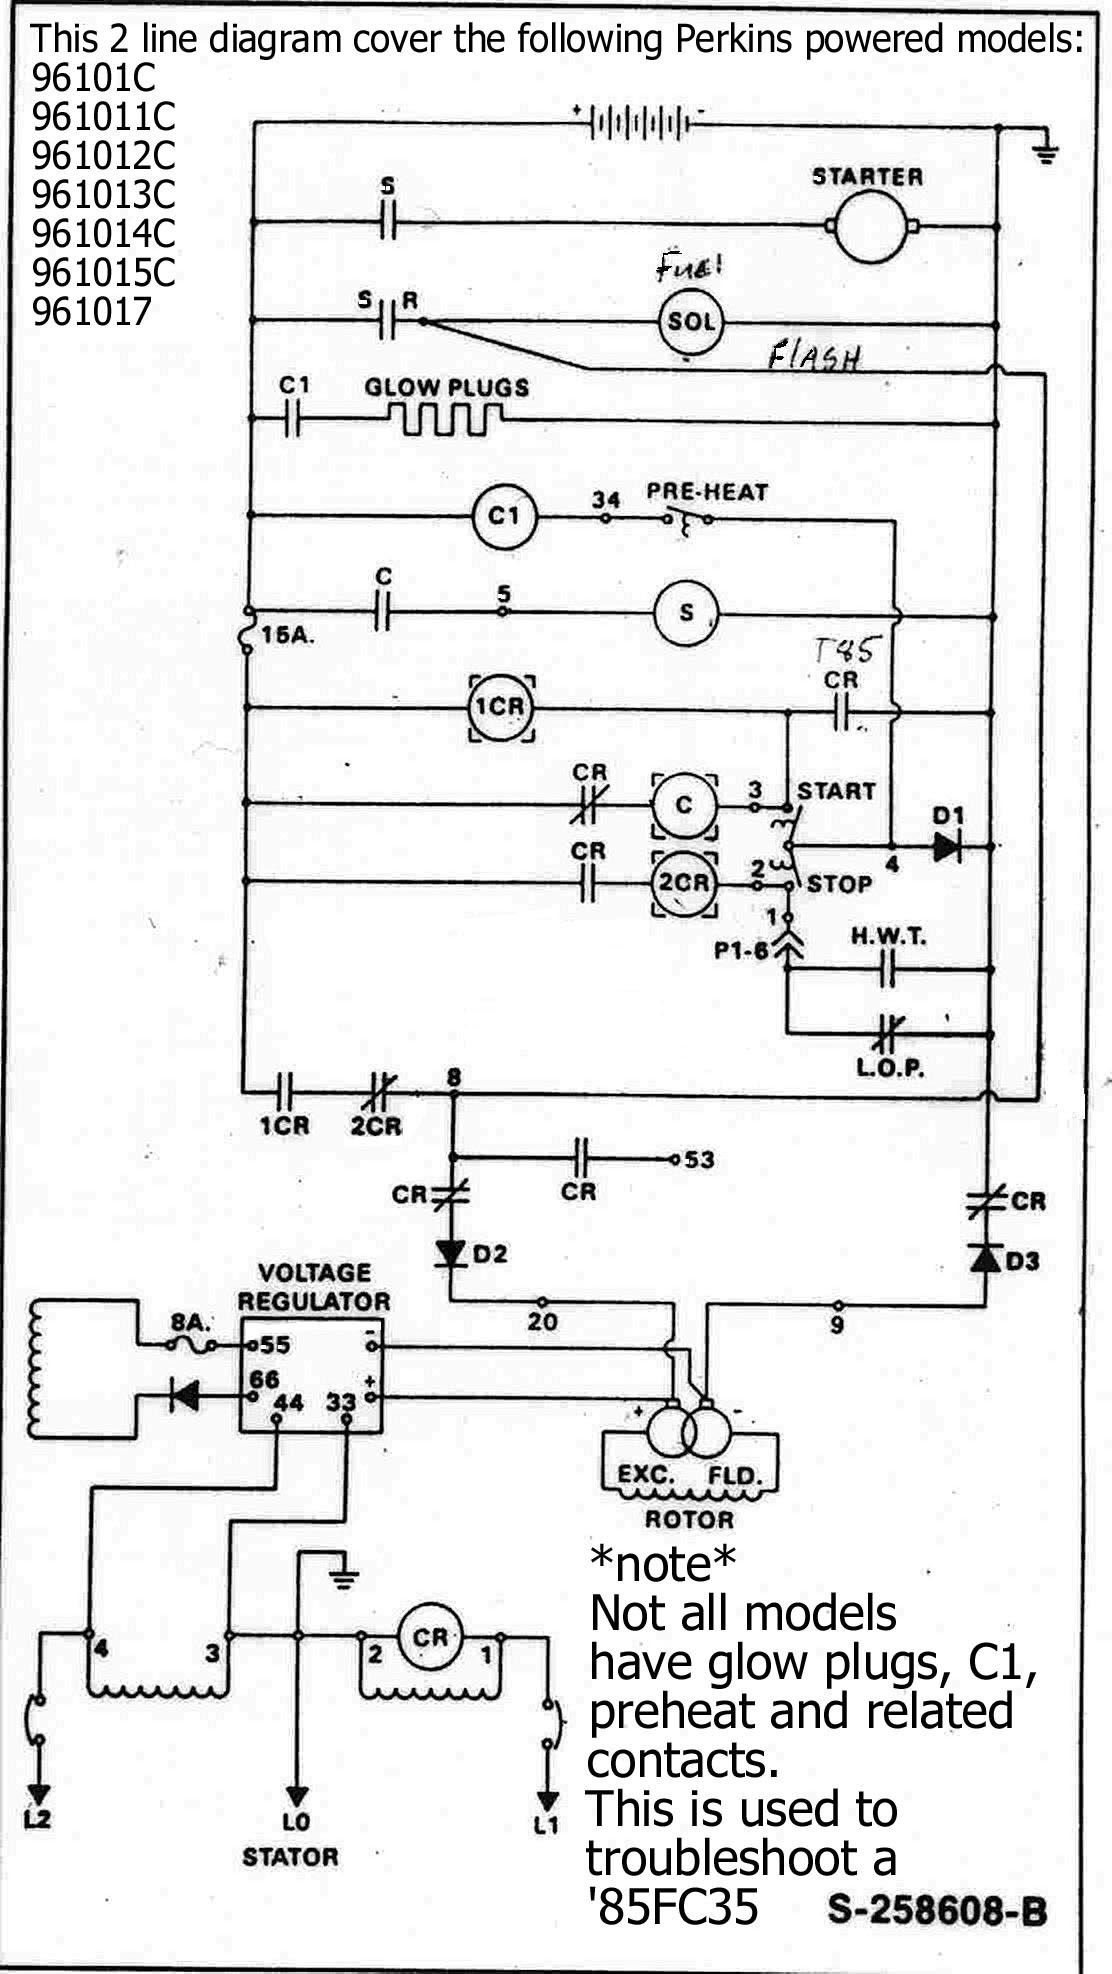 New Perkins Generator Wiring Diagram (With images